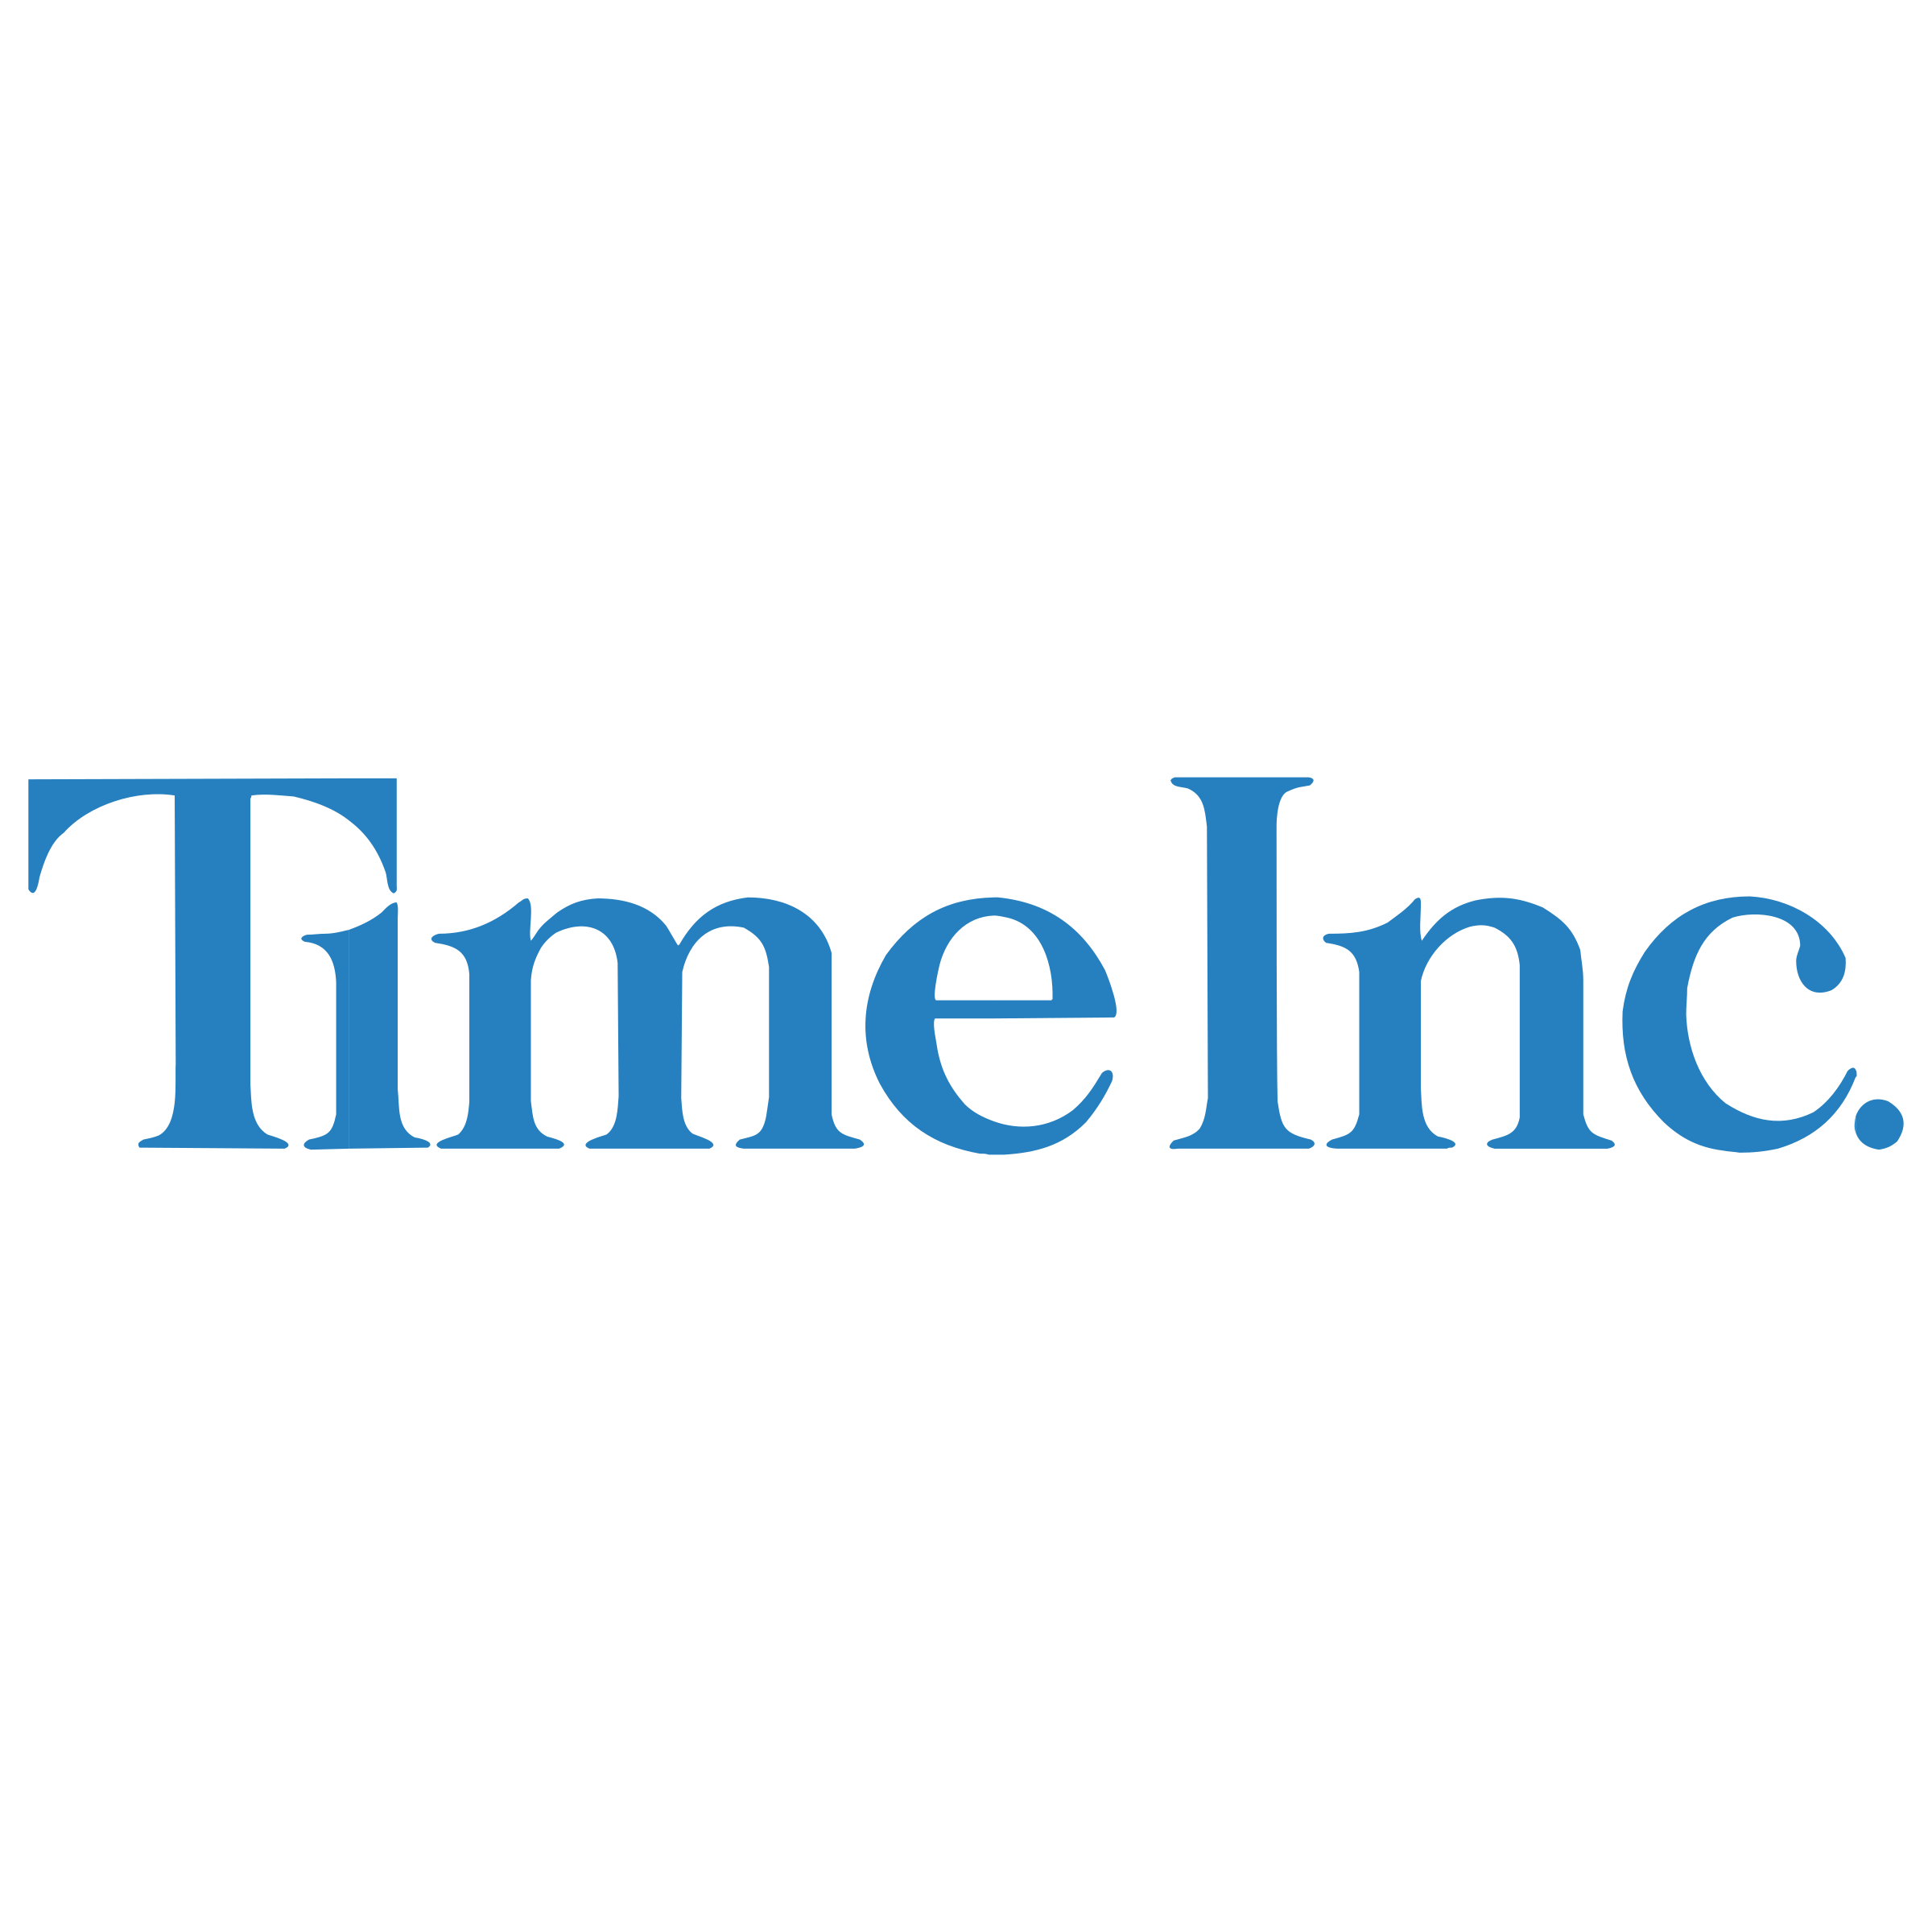 Time Inc. UK   Implemented A/B testing framework for Wallpaper.com that helped to grow by 10% organic search results and ad viewability. Implemented paywall for Decanter.com magazine.